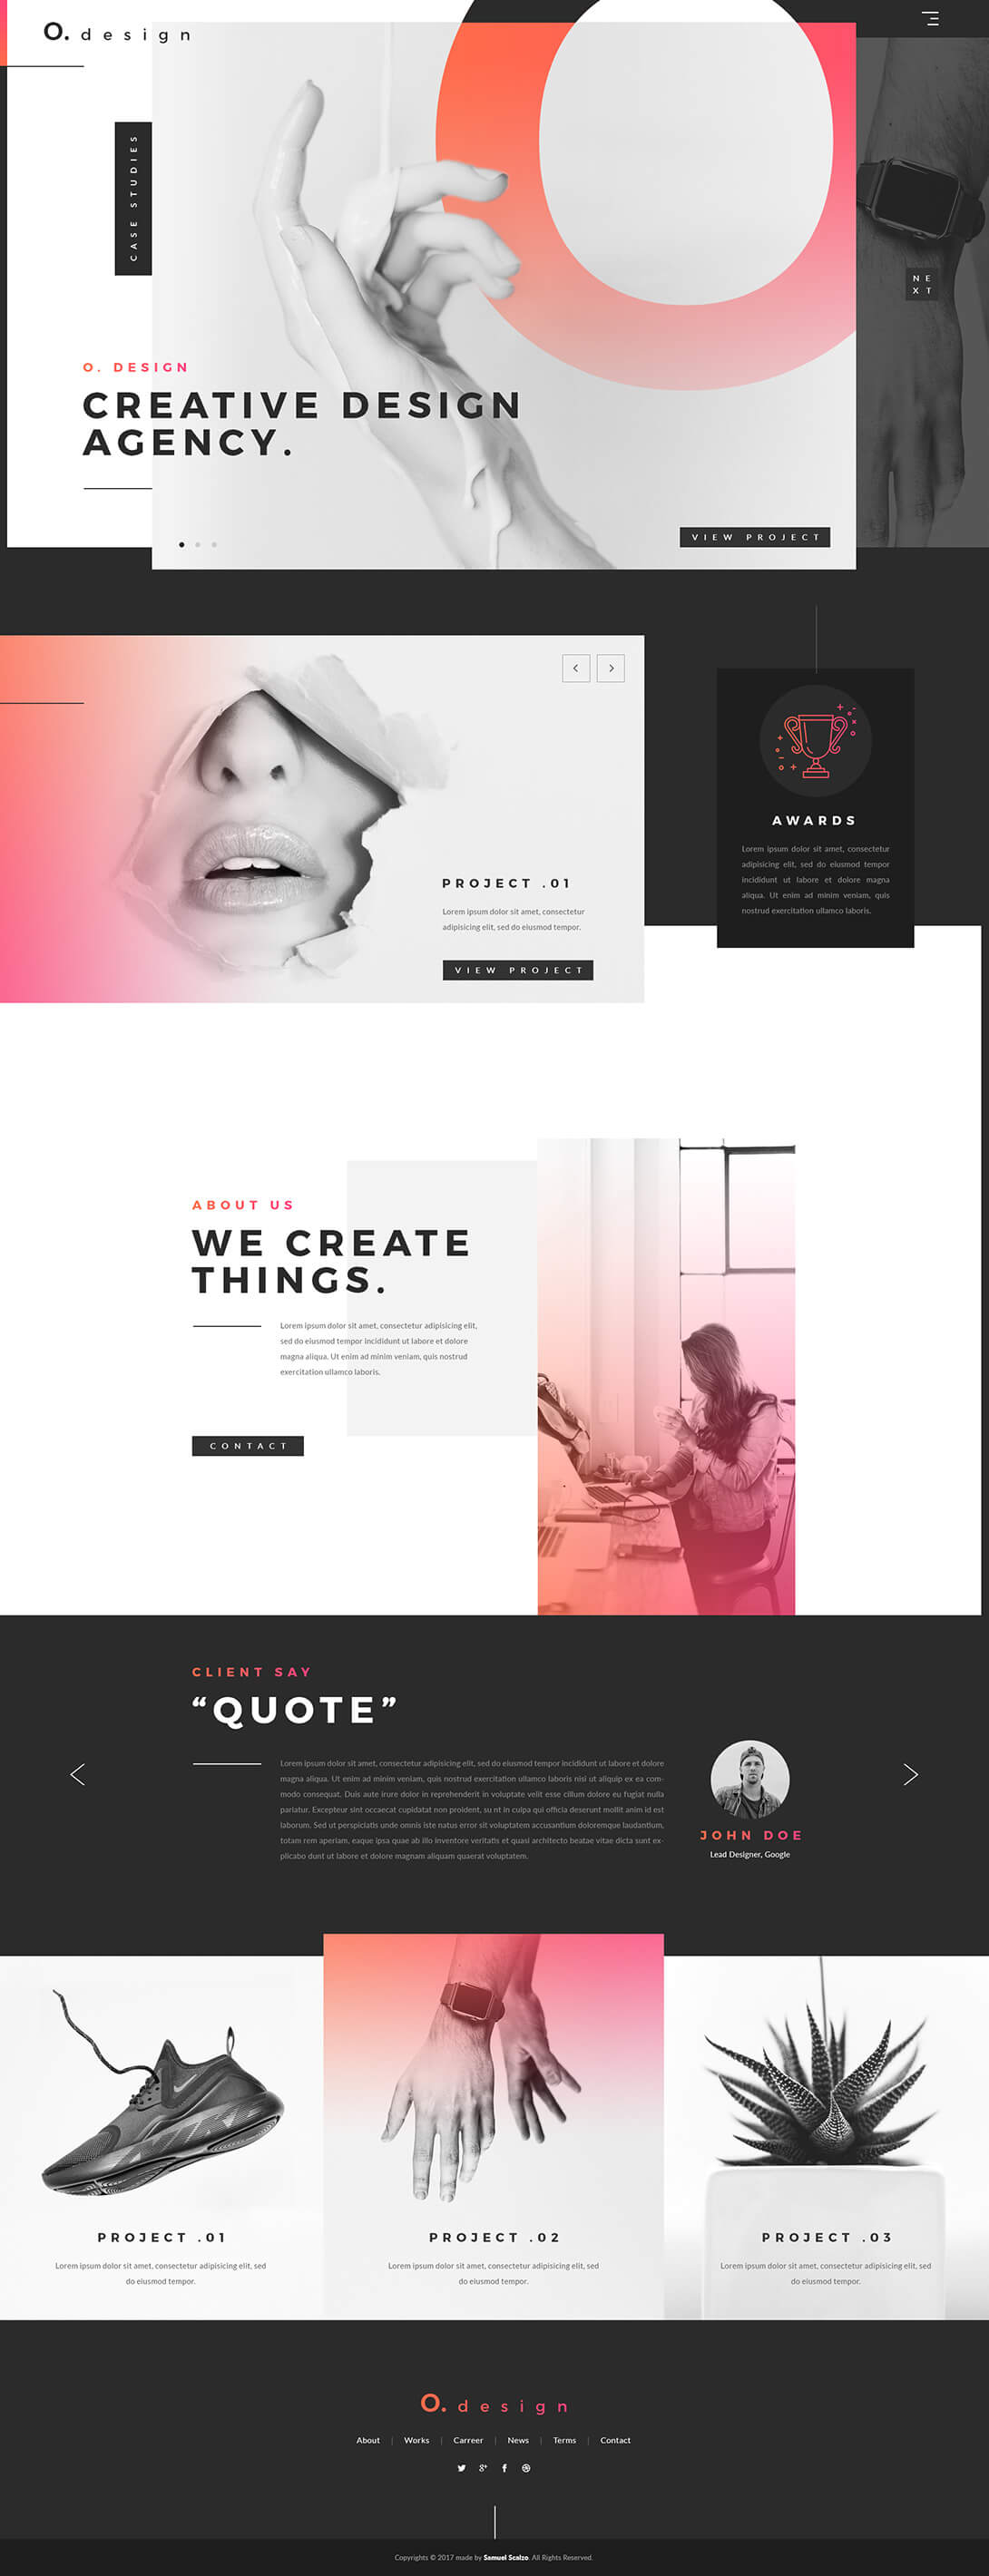 Creative-agency-web